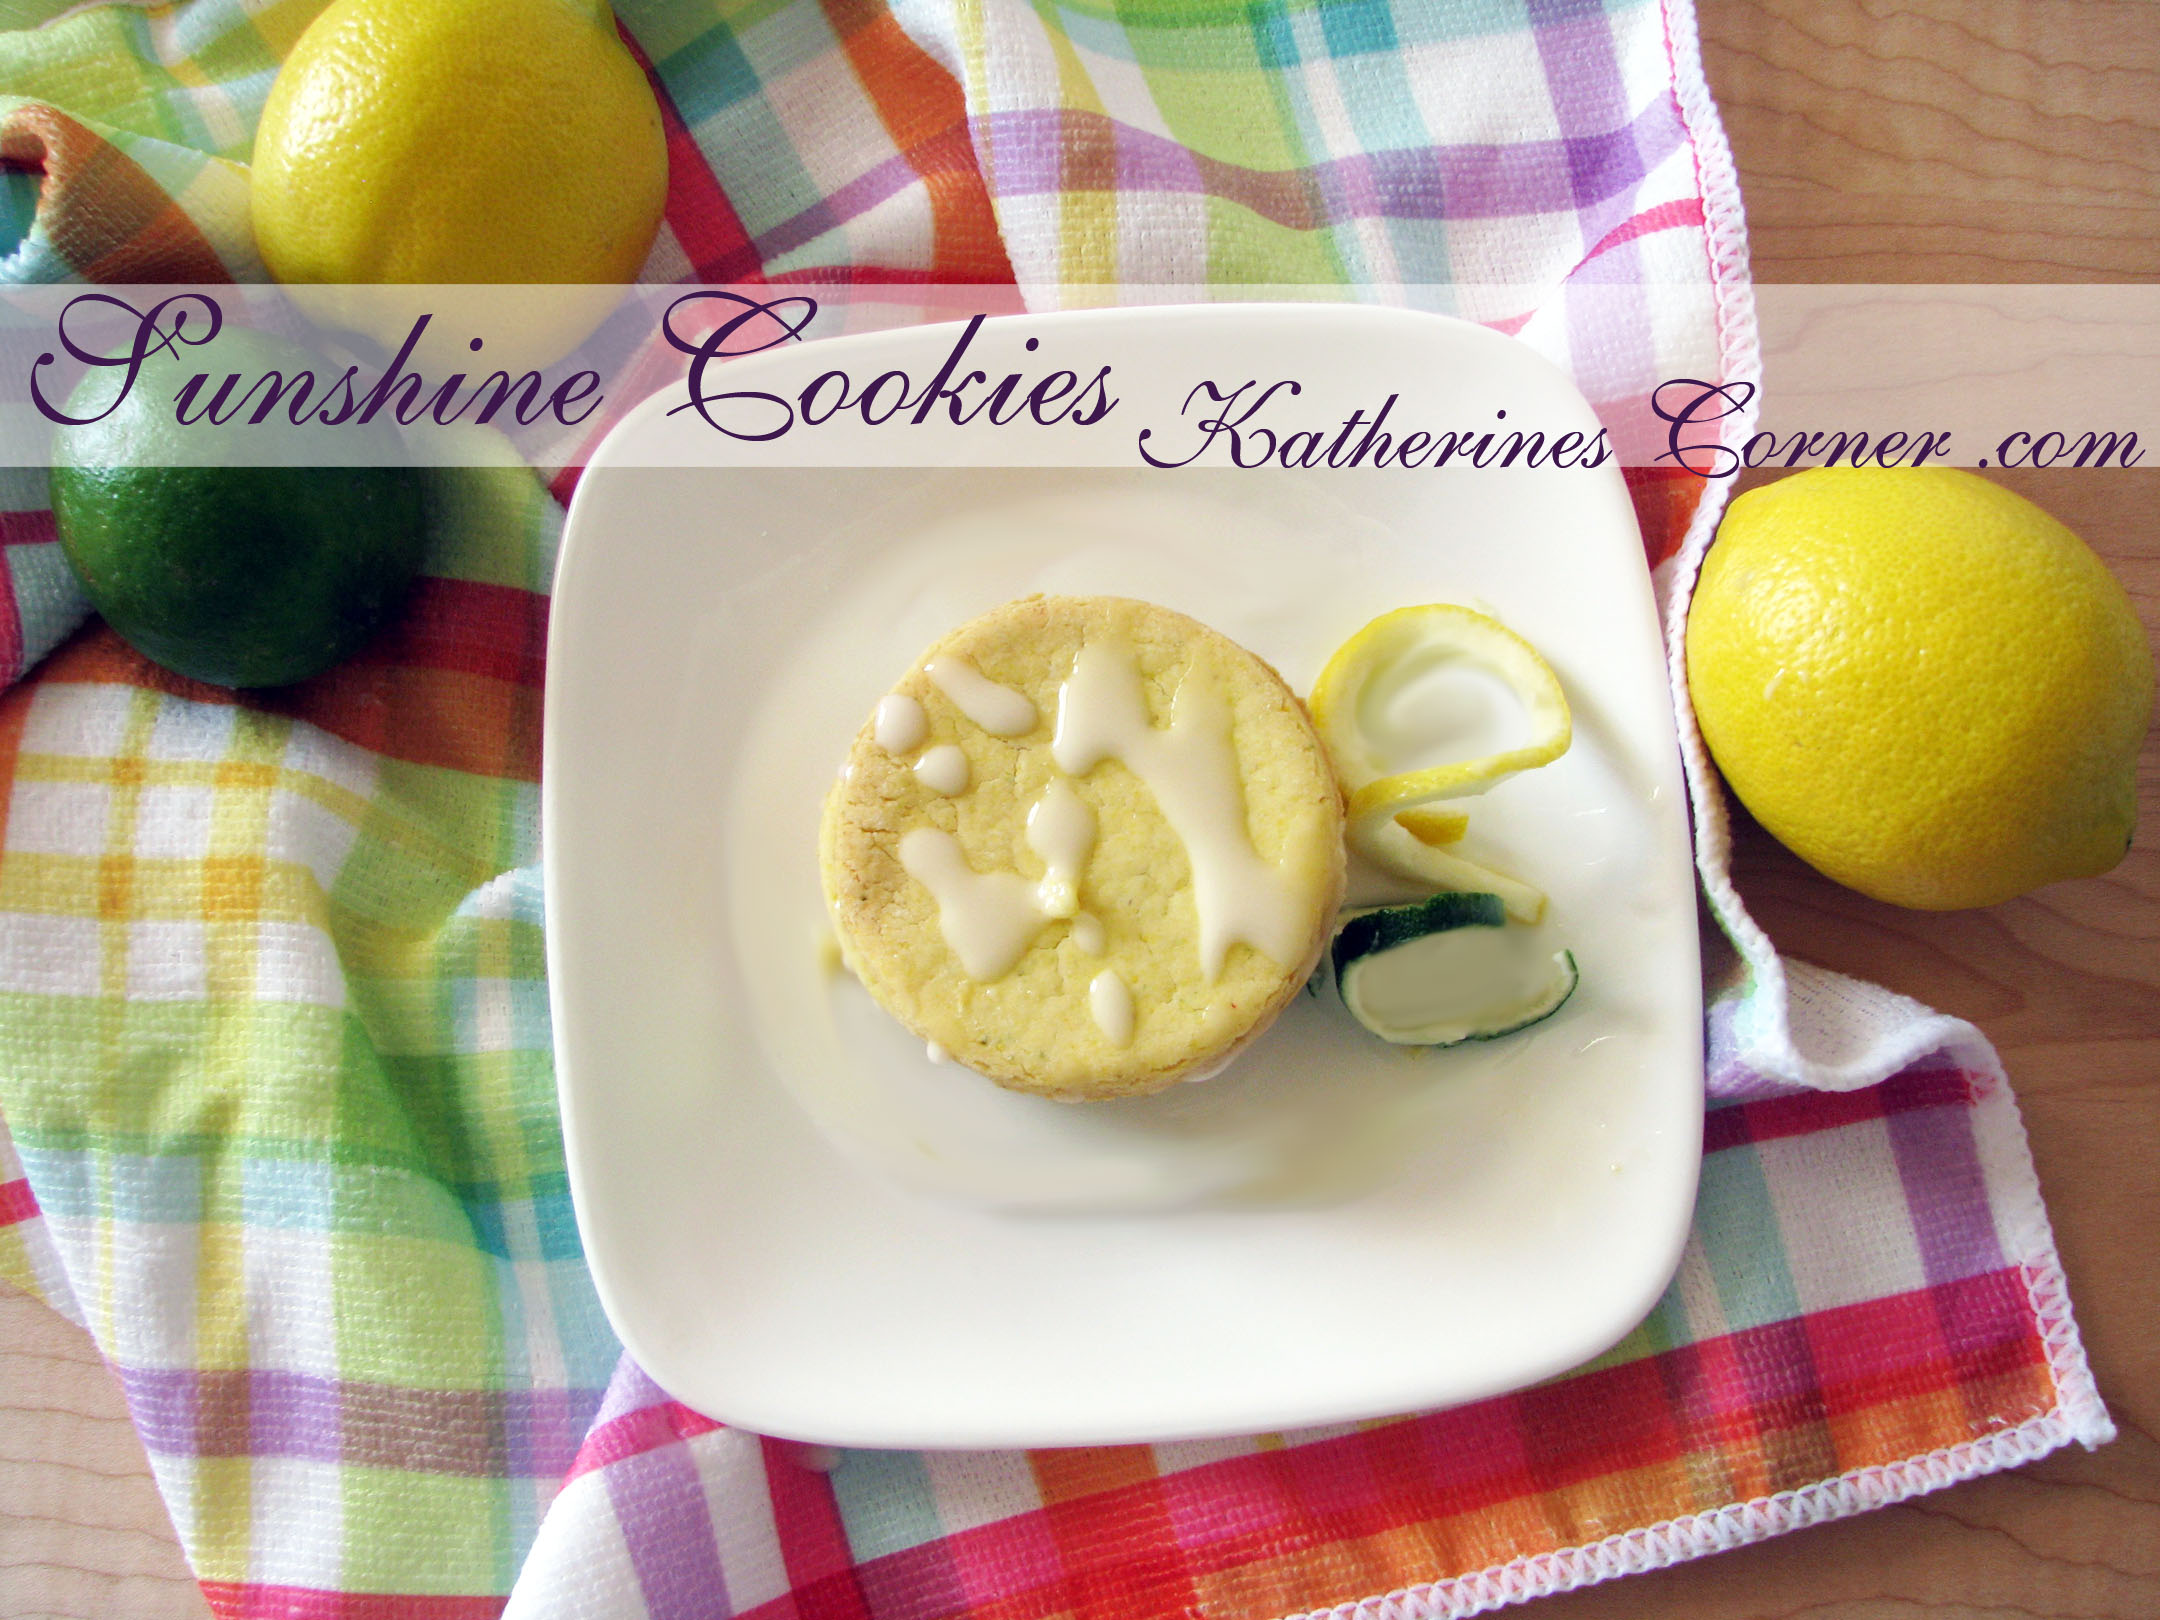 Sunshine Cookies Low Sugar Gluten Free - Katherines Corner